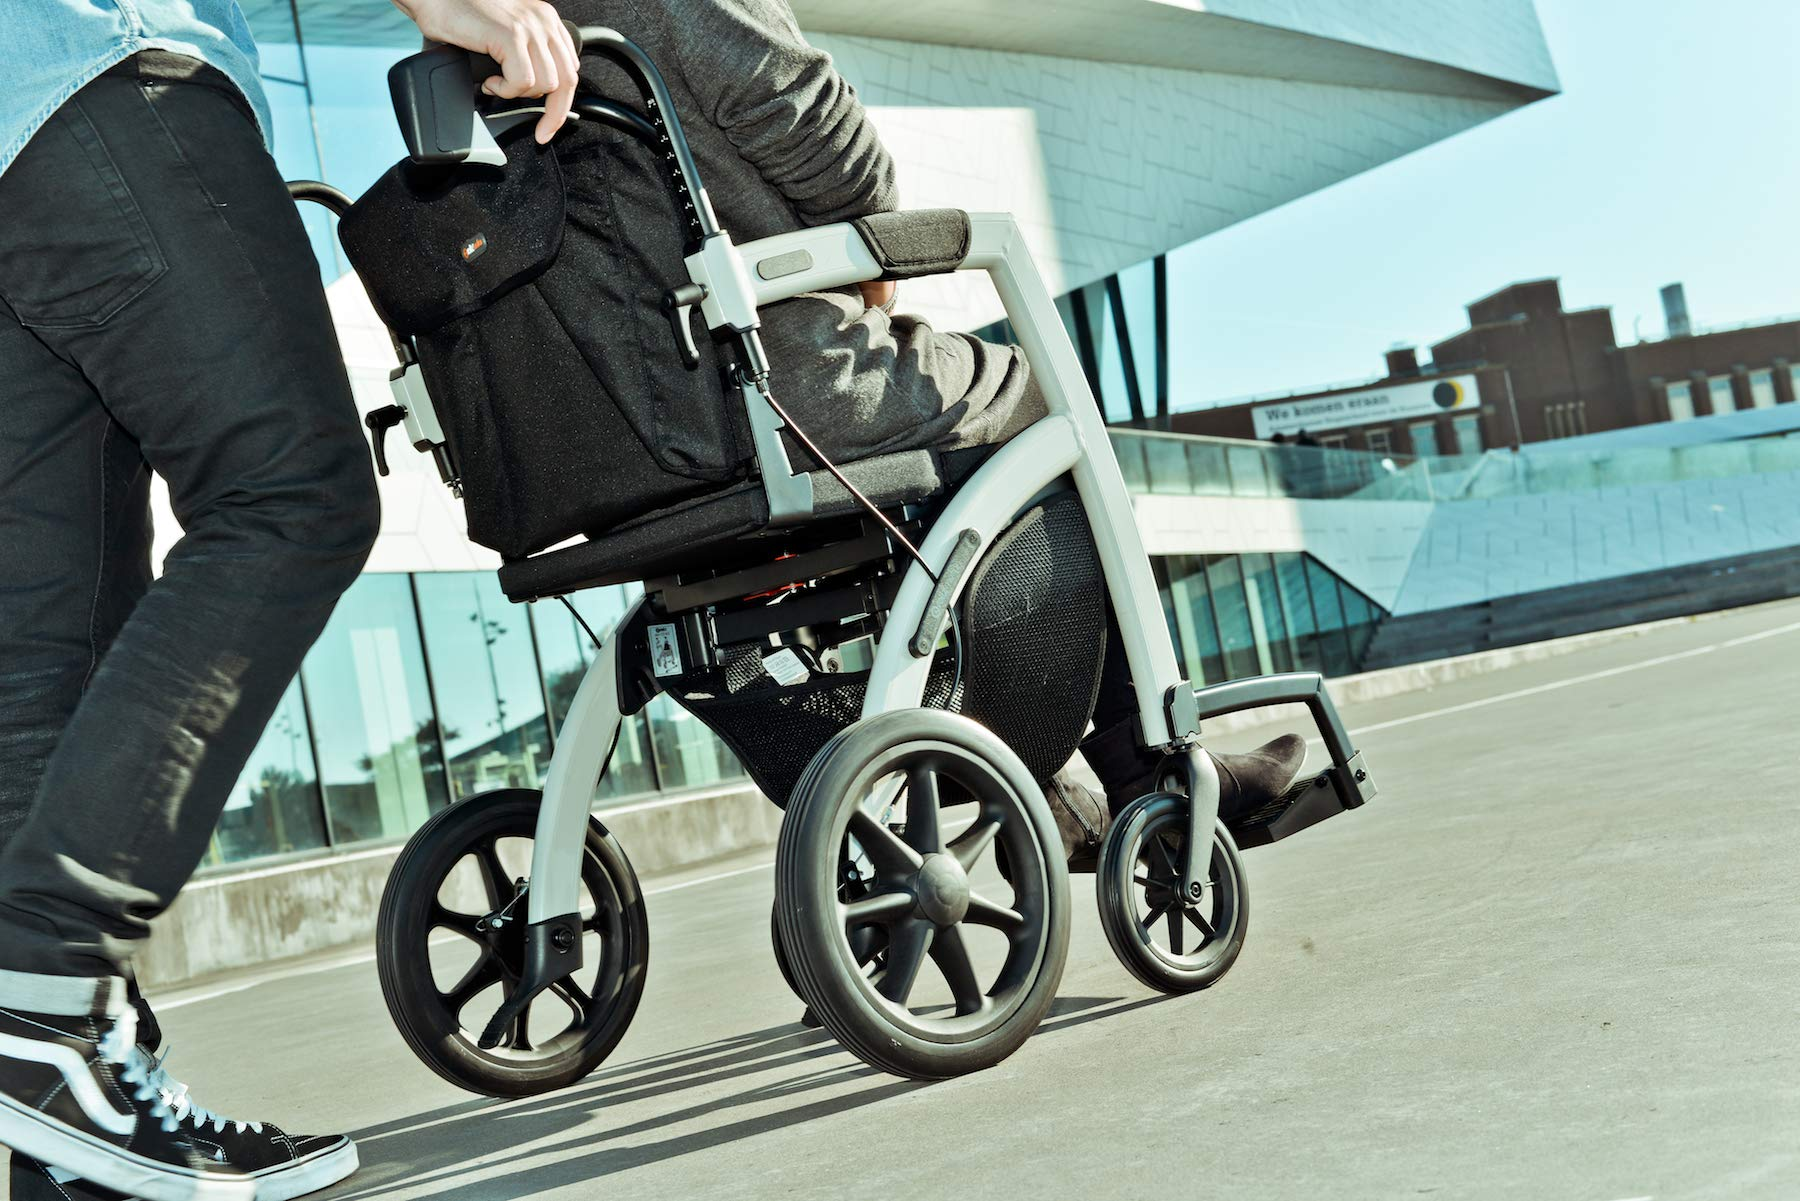 Rollz Motion 2-in-1 rollator and Transport Chair (Island Blue, Regular) by Rollz